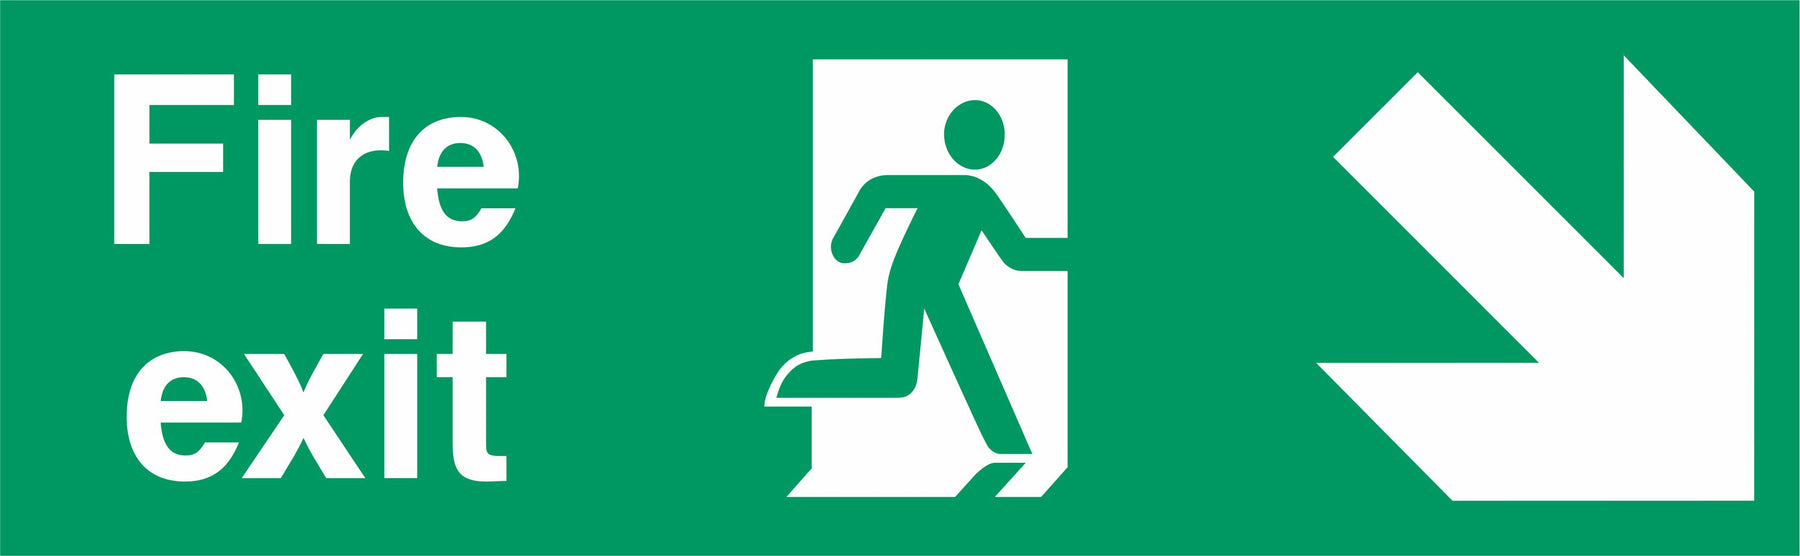 Fire Exit - Running Man Right - Down Right Arrow